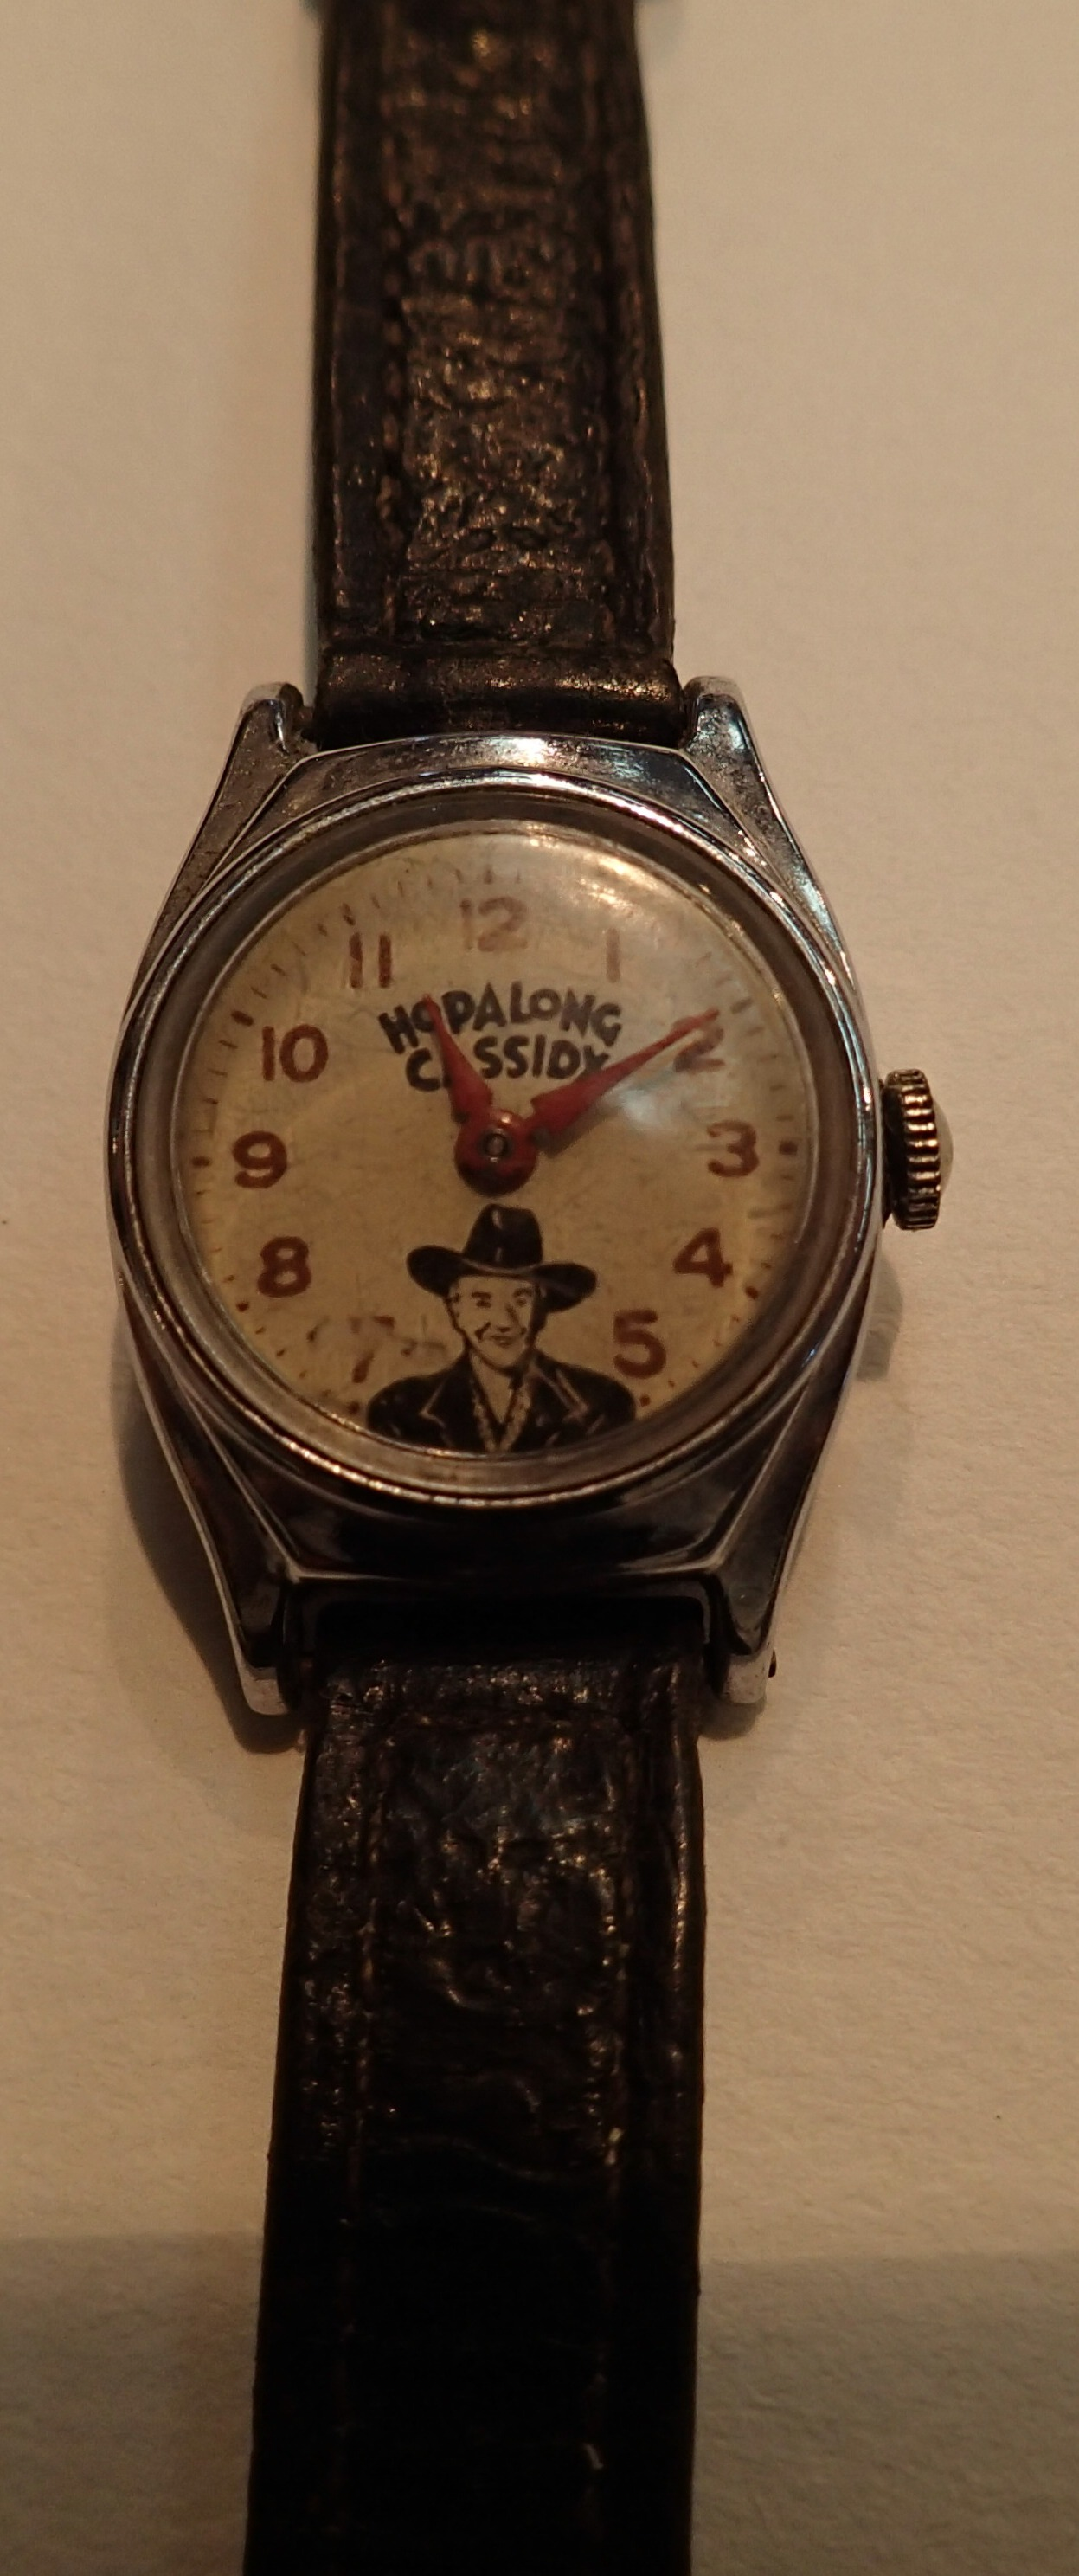 Hopalong Cassidy wristwatch with original strap, does not work. P&P Group 1 (£14+VAT for the first